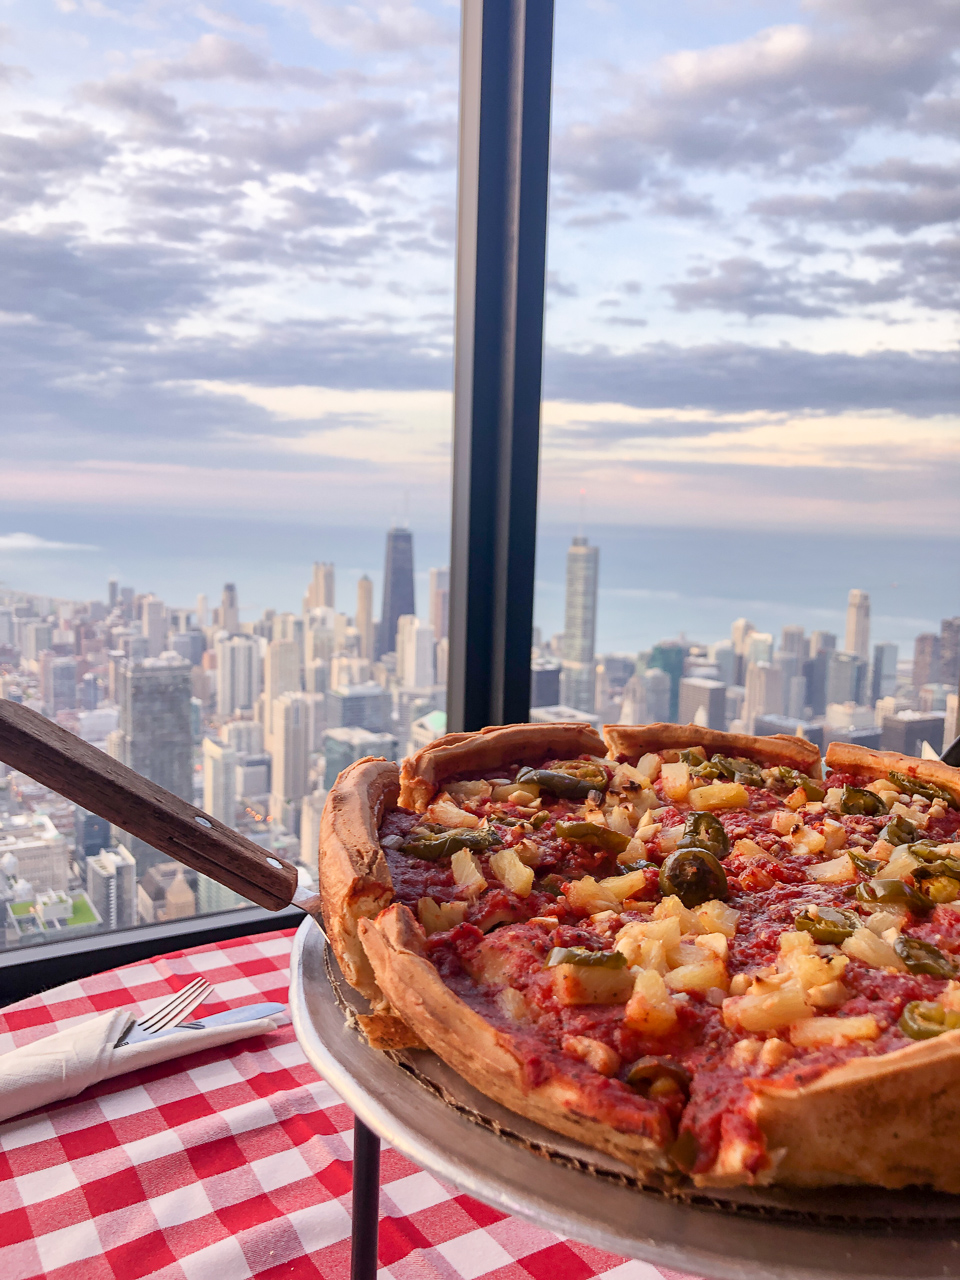 Pie in the Sky Chicago Skydeck